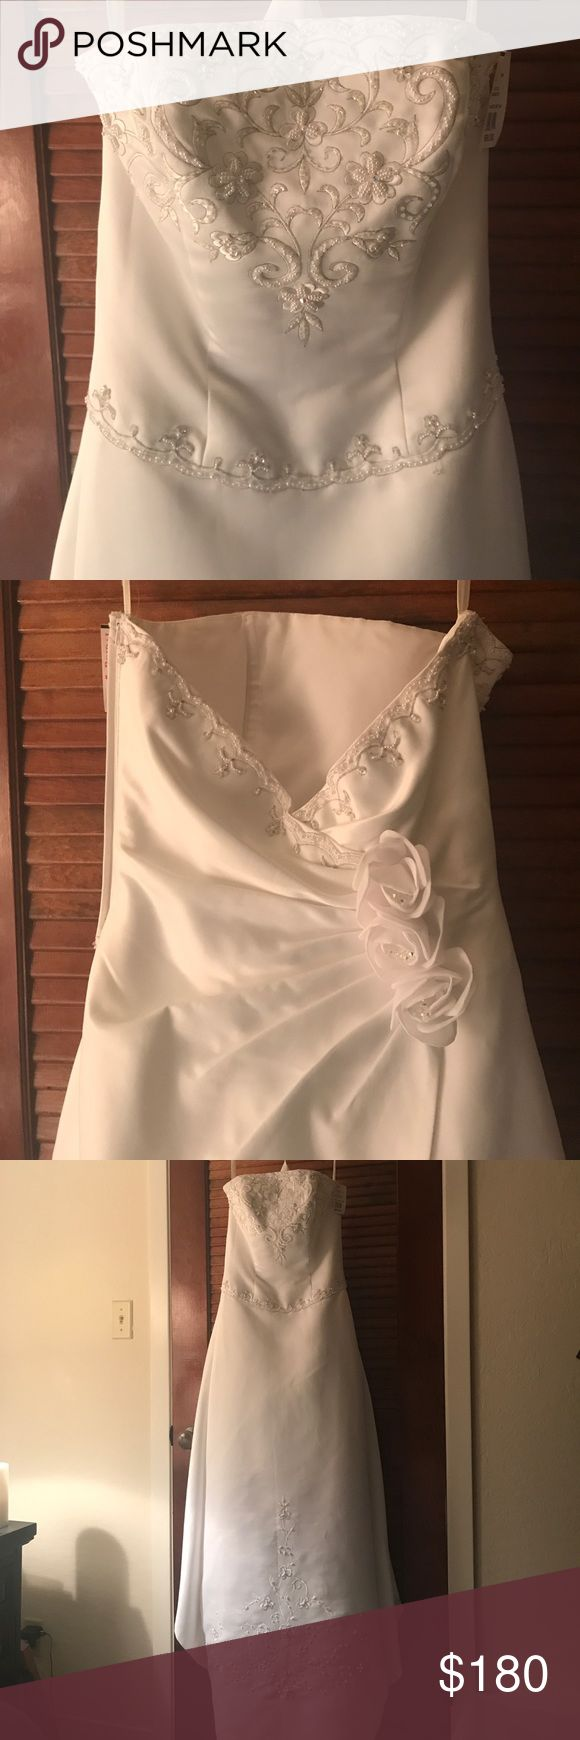 NWT white strapless wedding dress with roses beads New with tag, never worn, kept in the garment bag that came with the purchase. Strapless. Beaded. Long bustle. David's bridal collection. David's Bridal Dresses Wedding